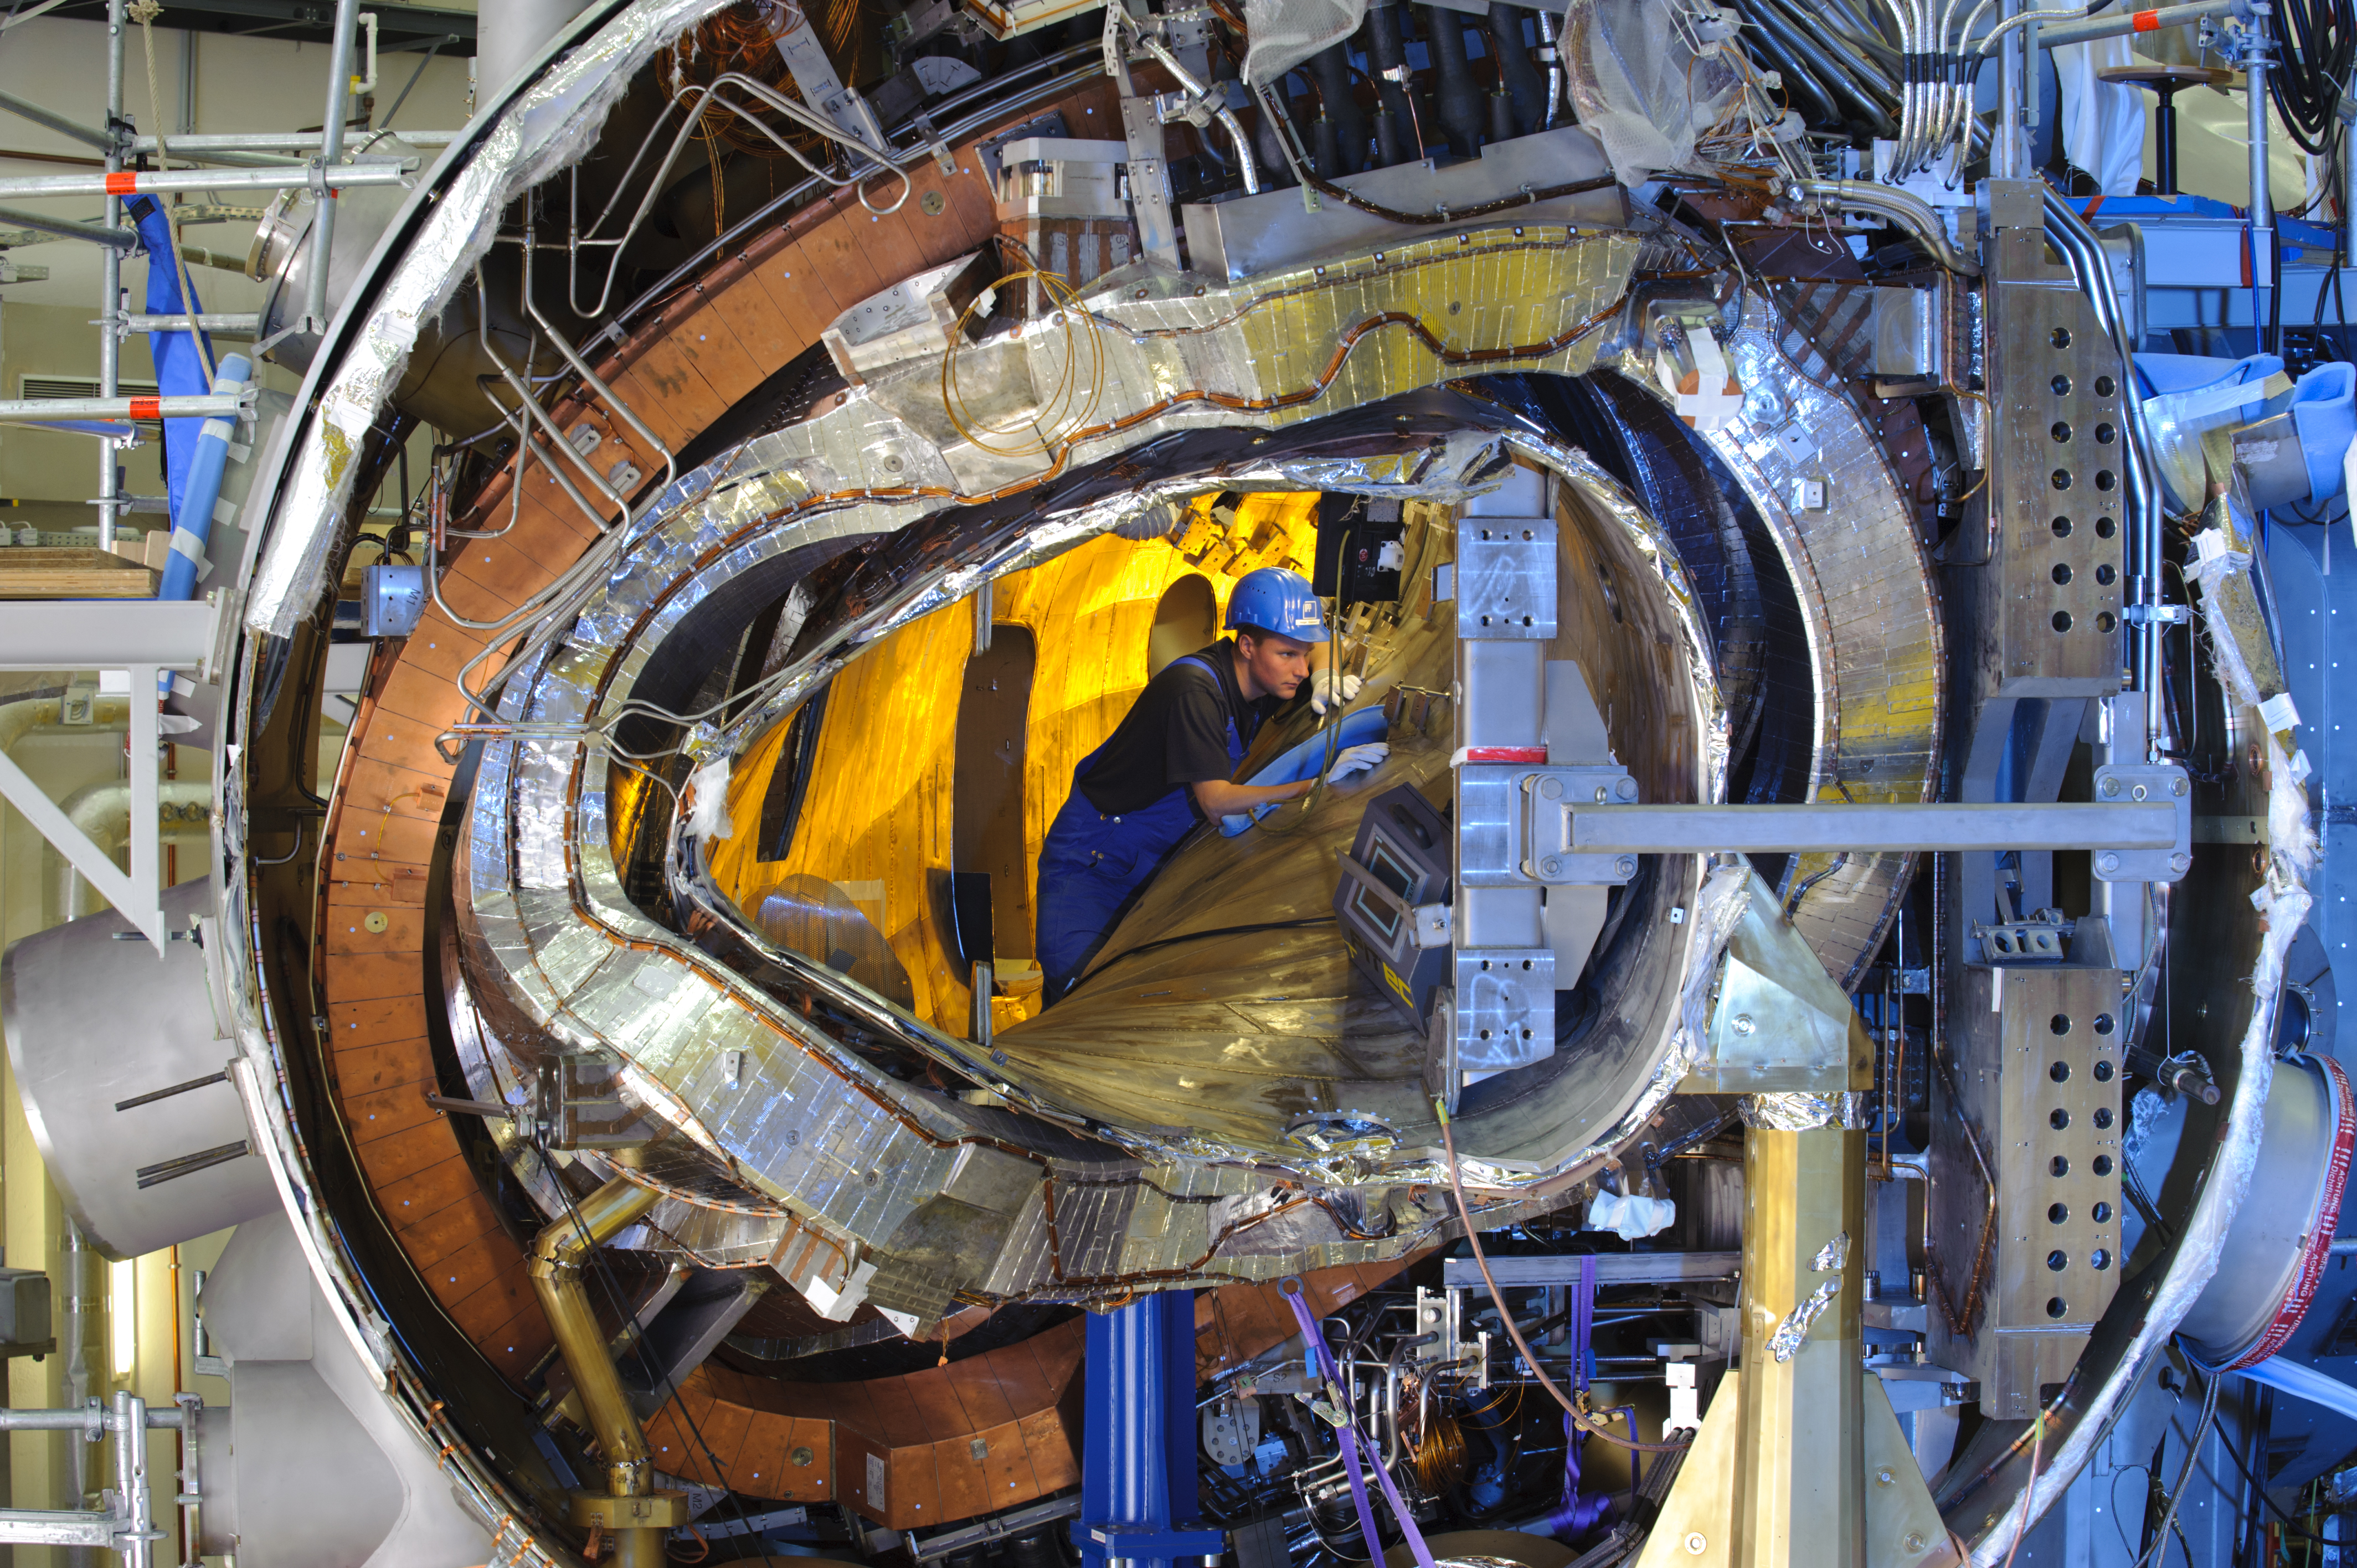 Twisting Design Of Fusion Reactor Is Thanks To Supercomputers Nuclear Power Plant Layout The Wendelstein 7 X Allows For A Magnetic Field Hold High Temperature Ionised Plasma In Place Thus Allowing Stable